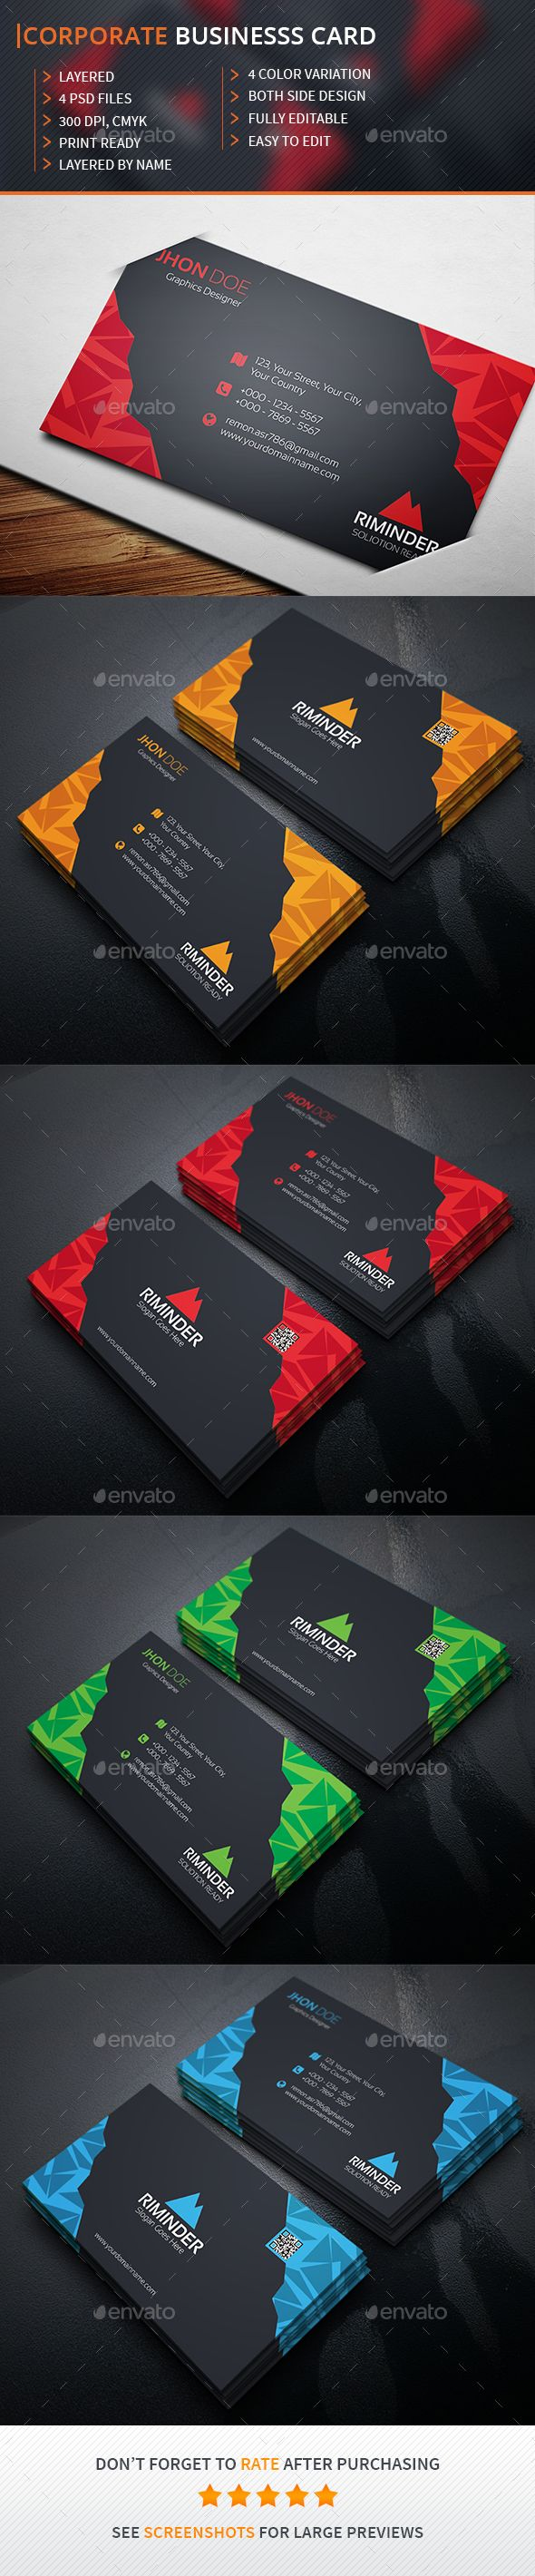 158 Best Business Cards Images On Pinterest Business Card Design